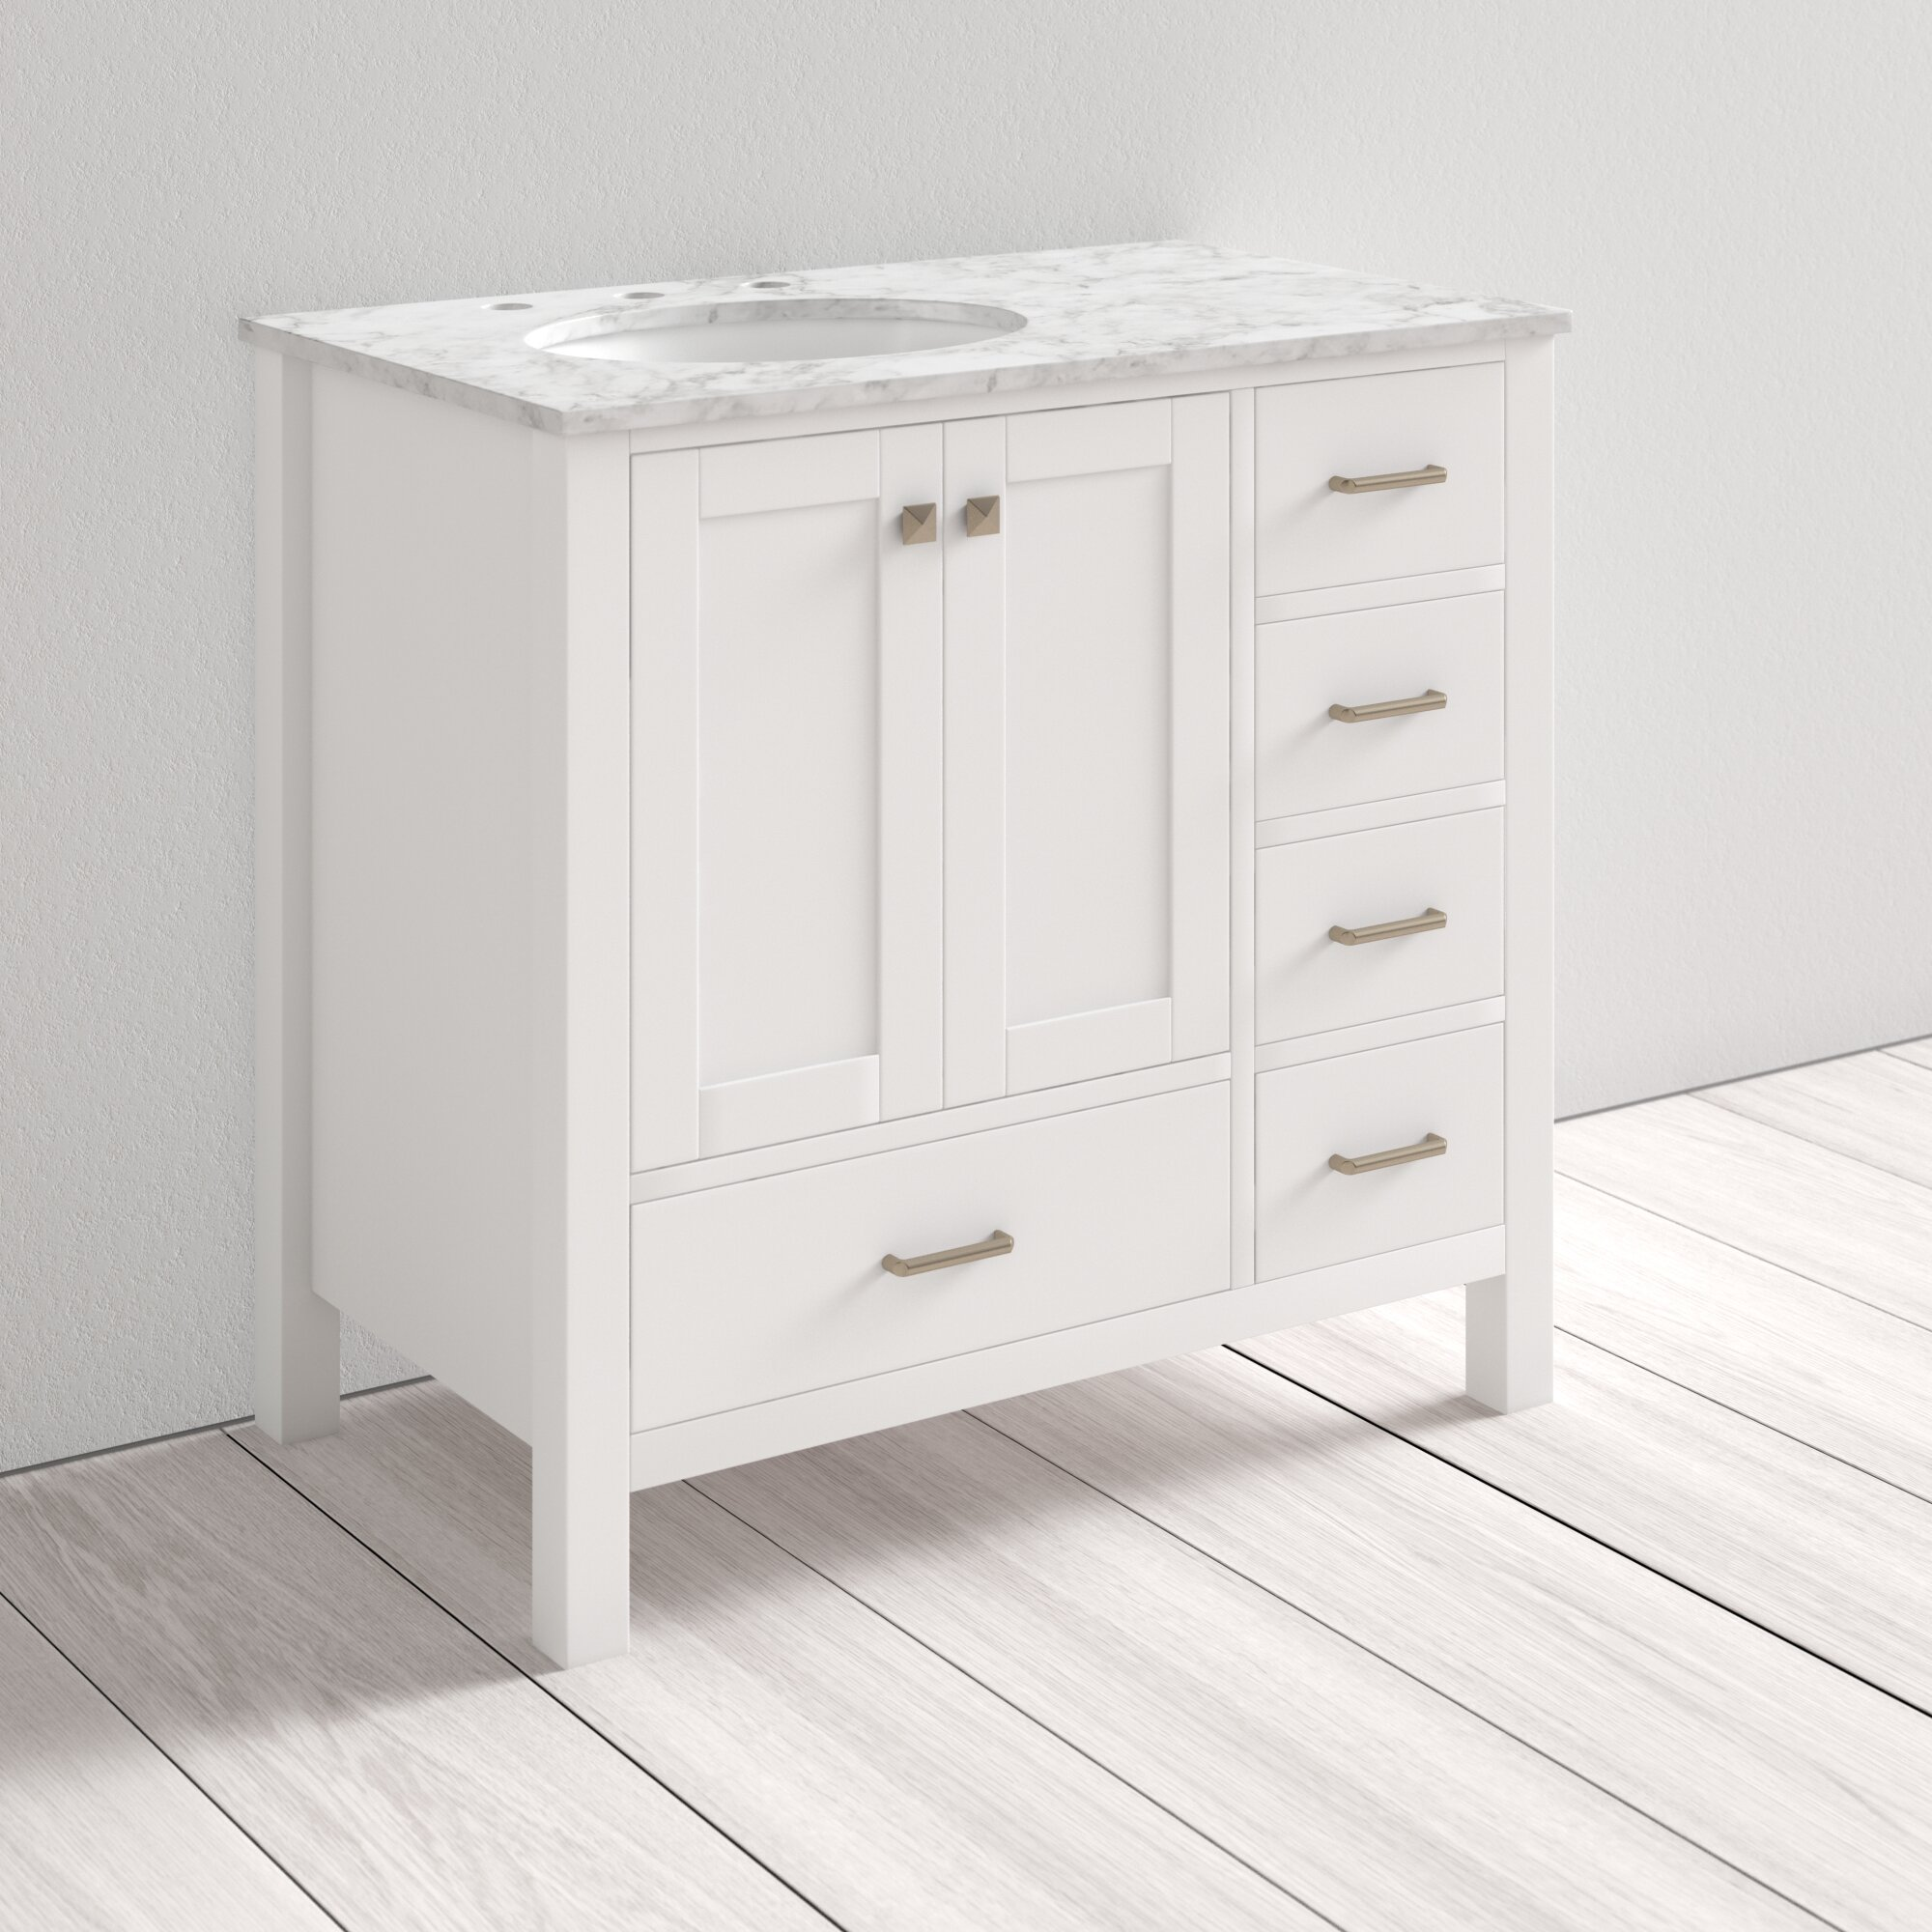 Juno Full Cabinet 36 Single Bathroom